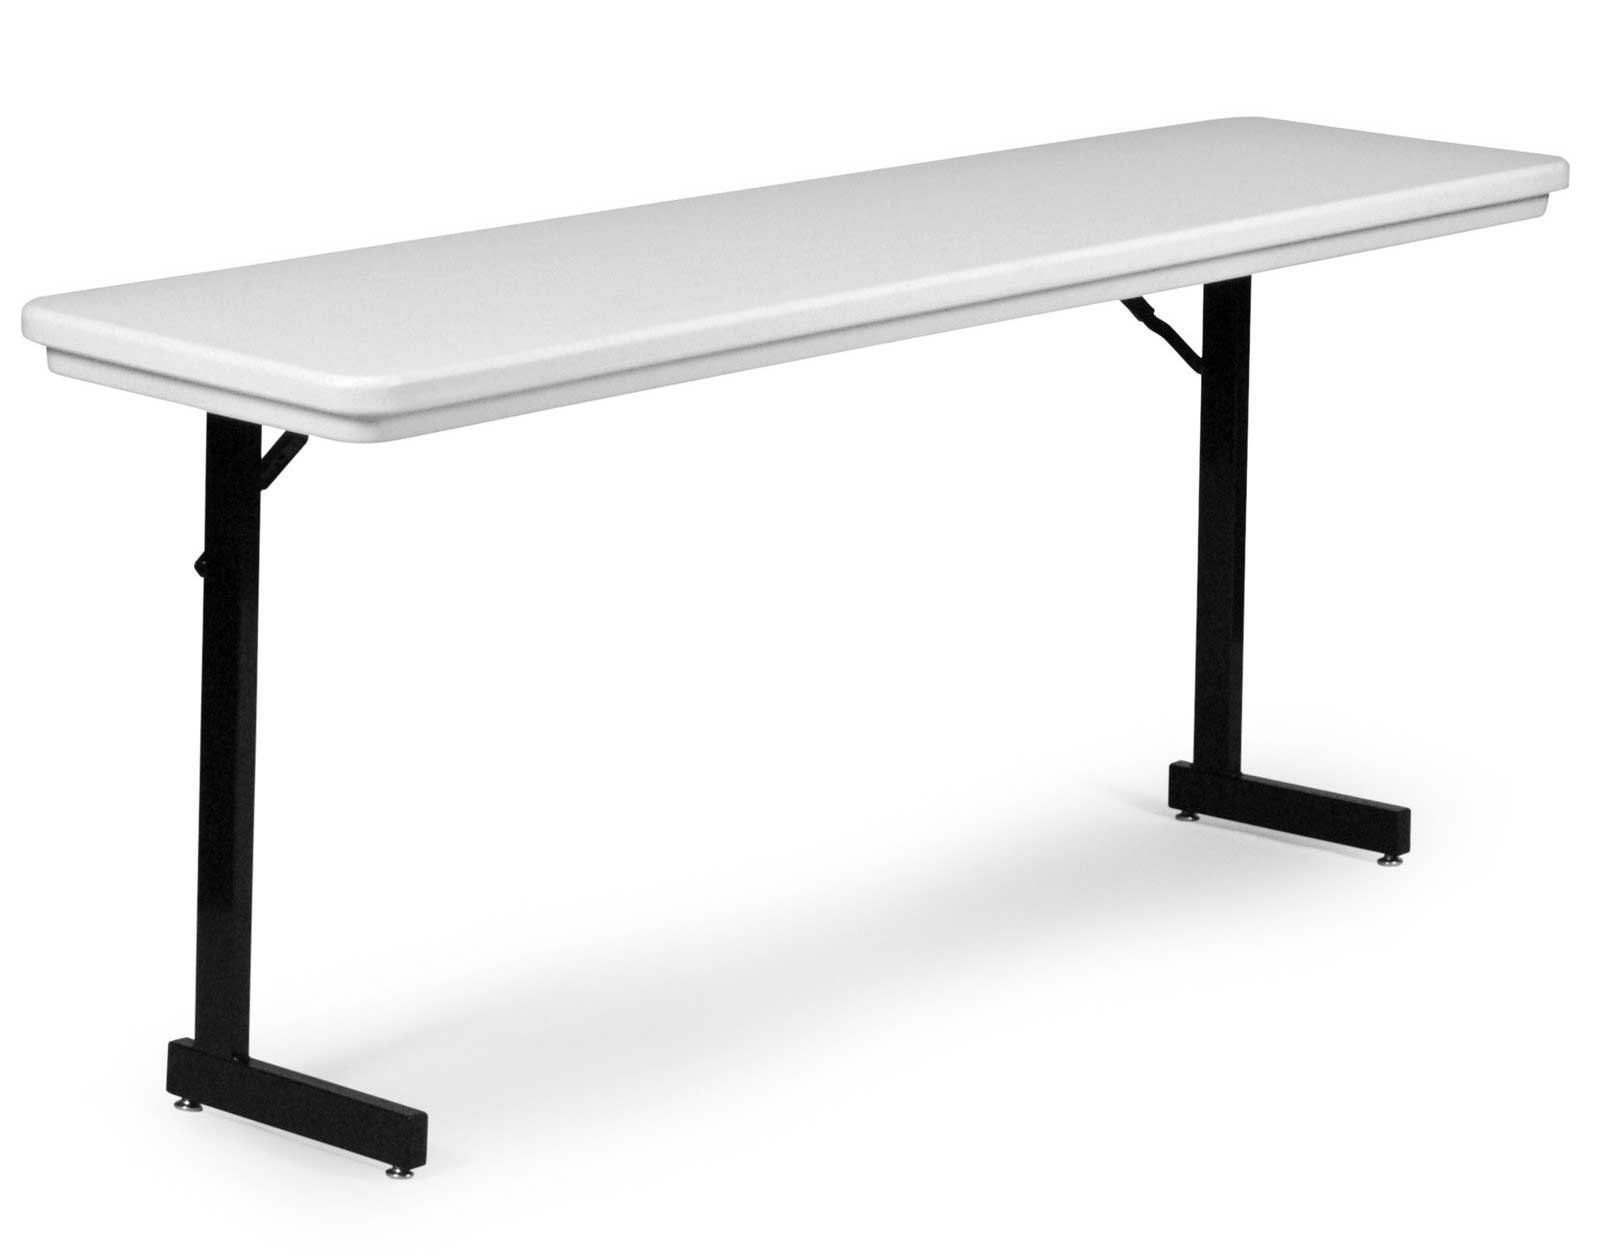 Plastic Folding Table For Home Office Equipment